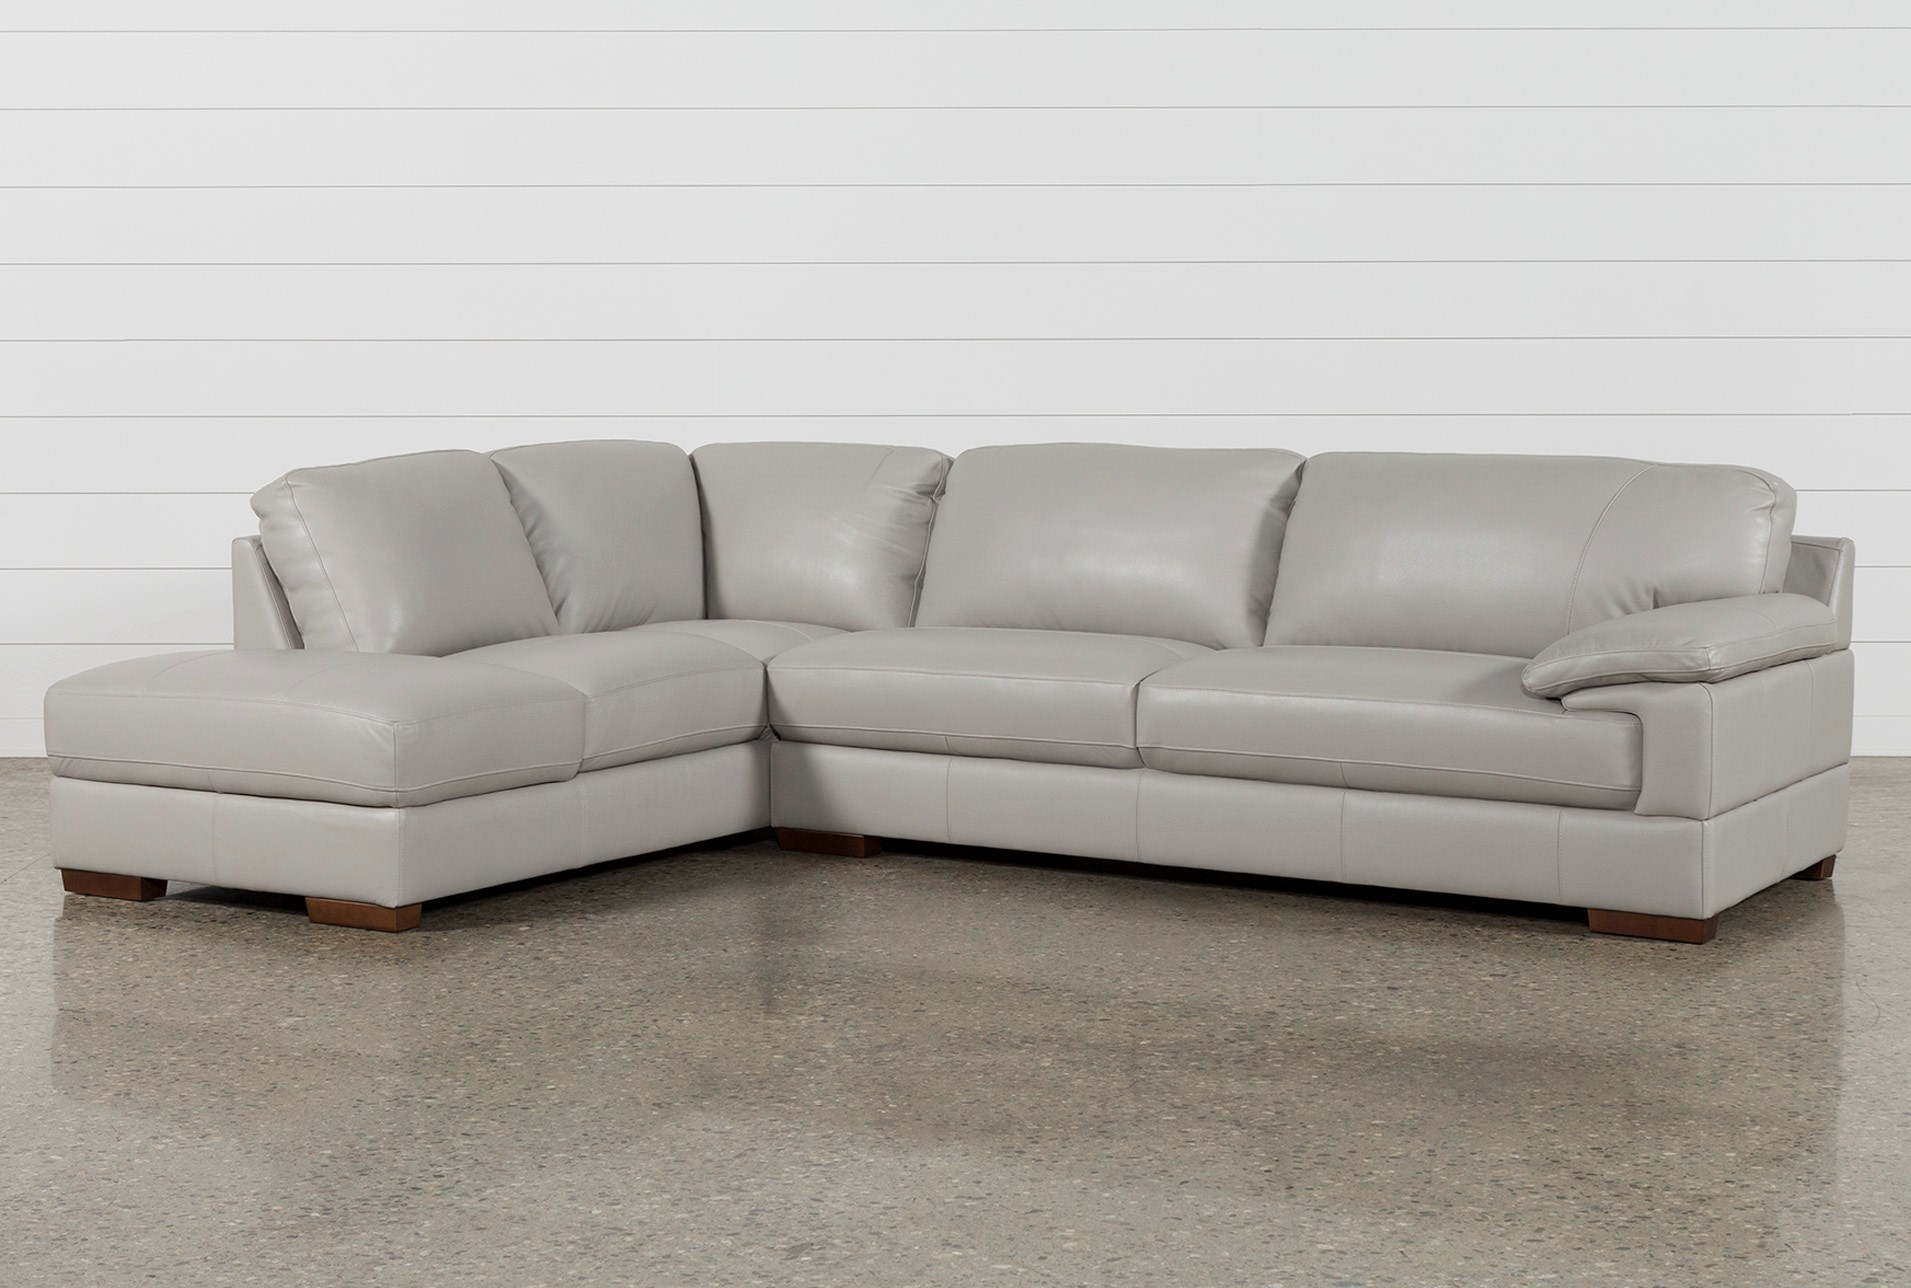 Outstanding Nico Light Grey Leather Sectional With Left Arm Facing Armless Storage Chaise Forskolin Free Trial Chair Design Images Forskolin Free Trialorg